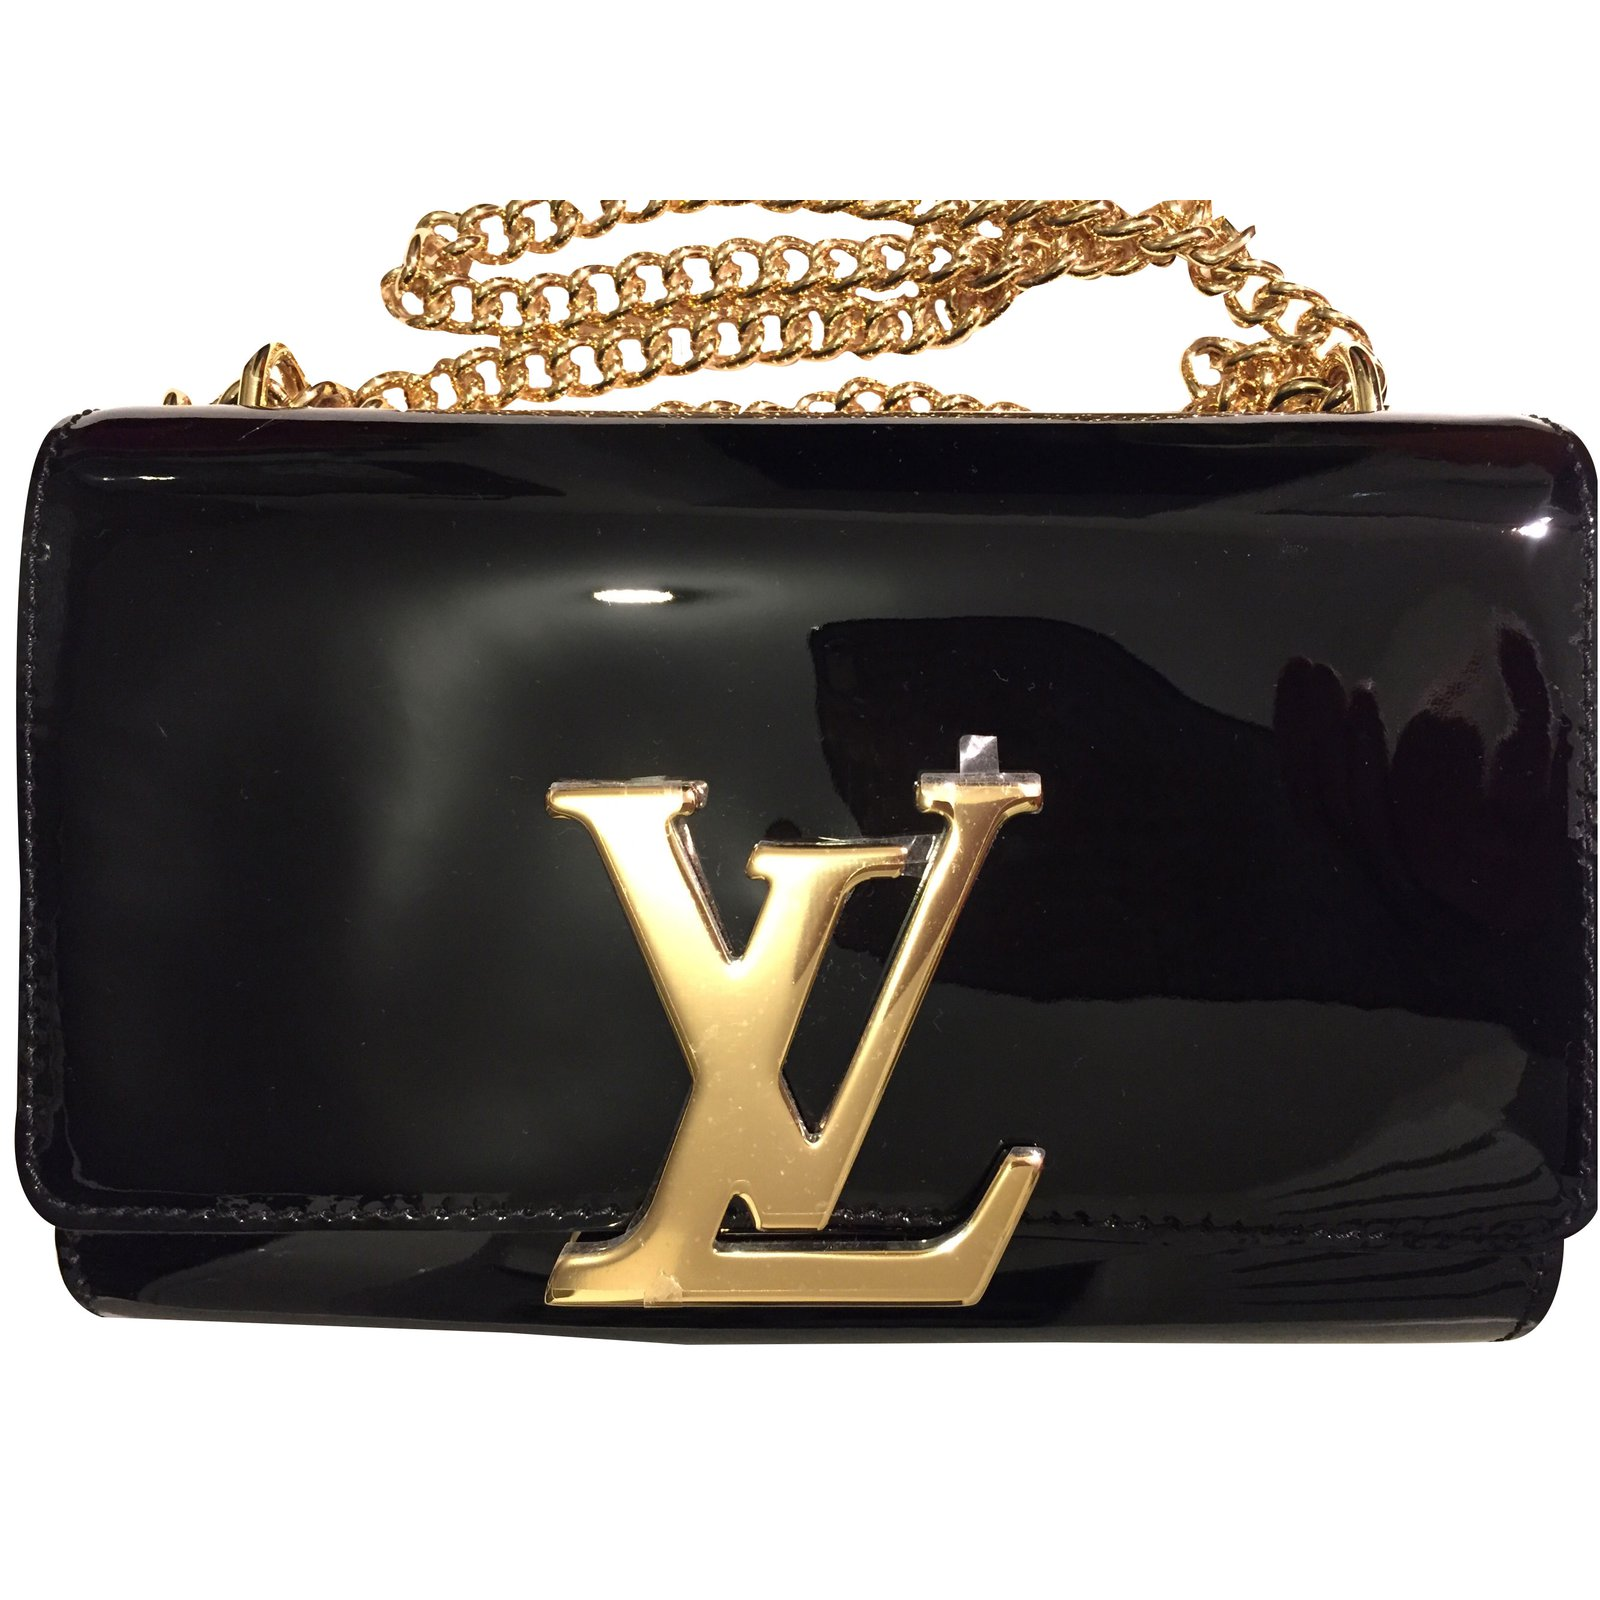 louis vuitton clutch bag. louis vuitton clutch bag bags patent leather black ref.35405